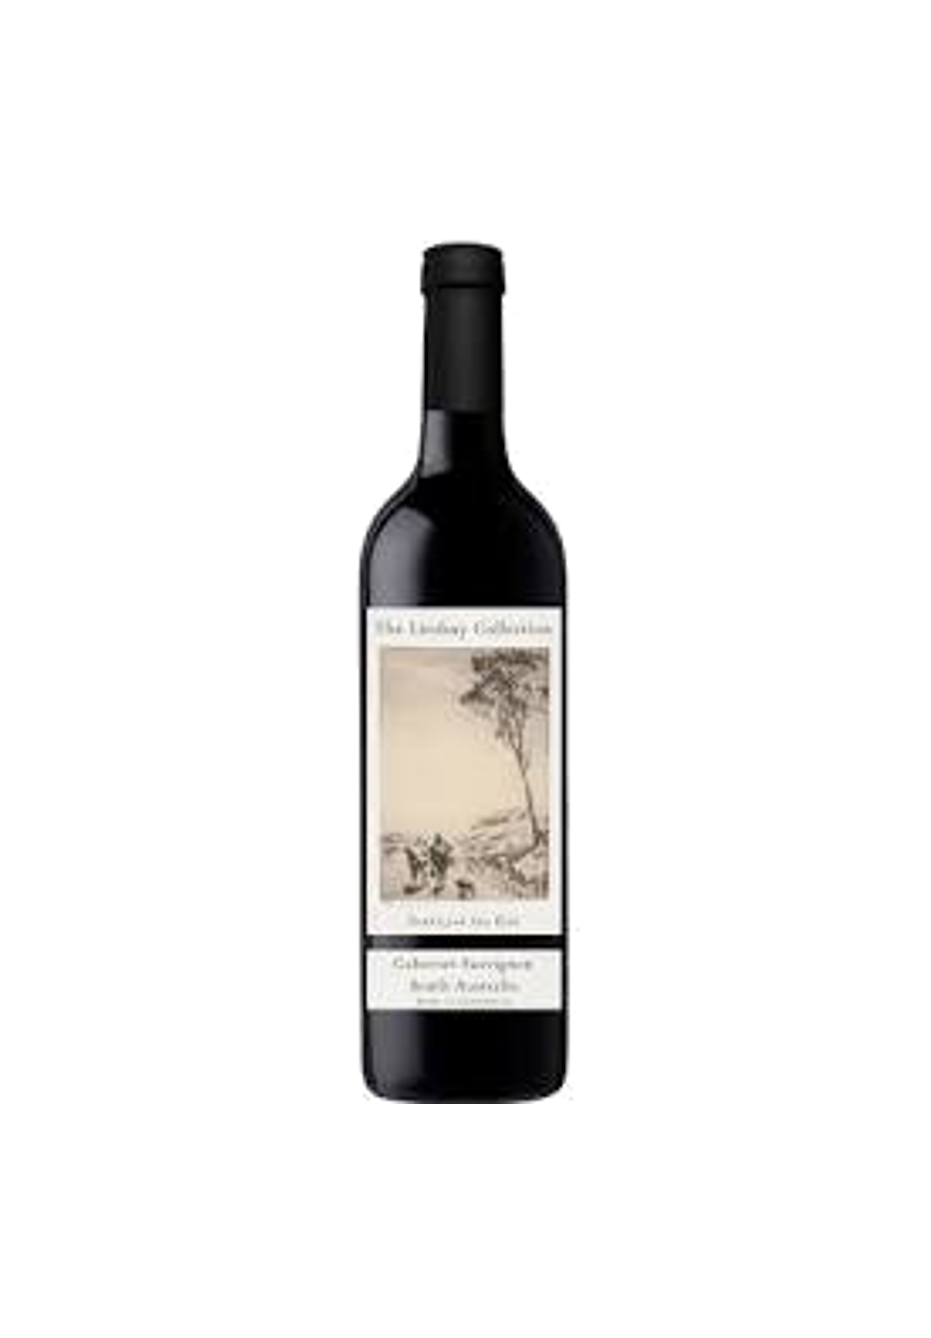 The Lindsay Collection South Australia Cabernet Sauvignon 2017